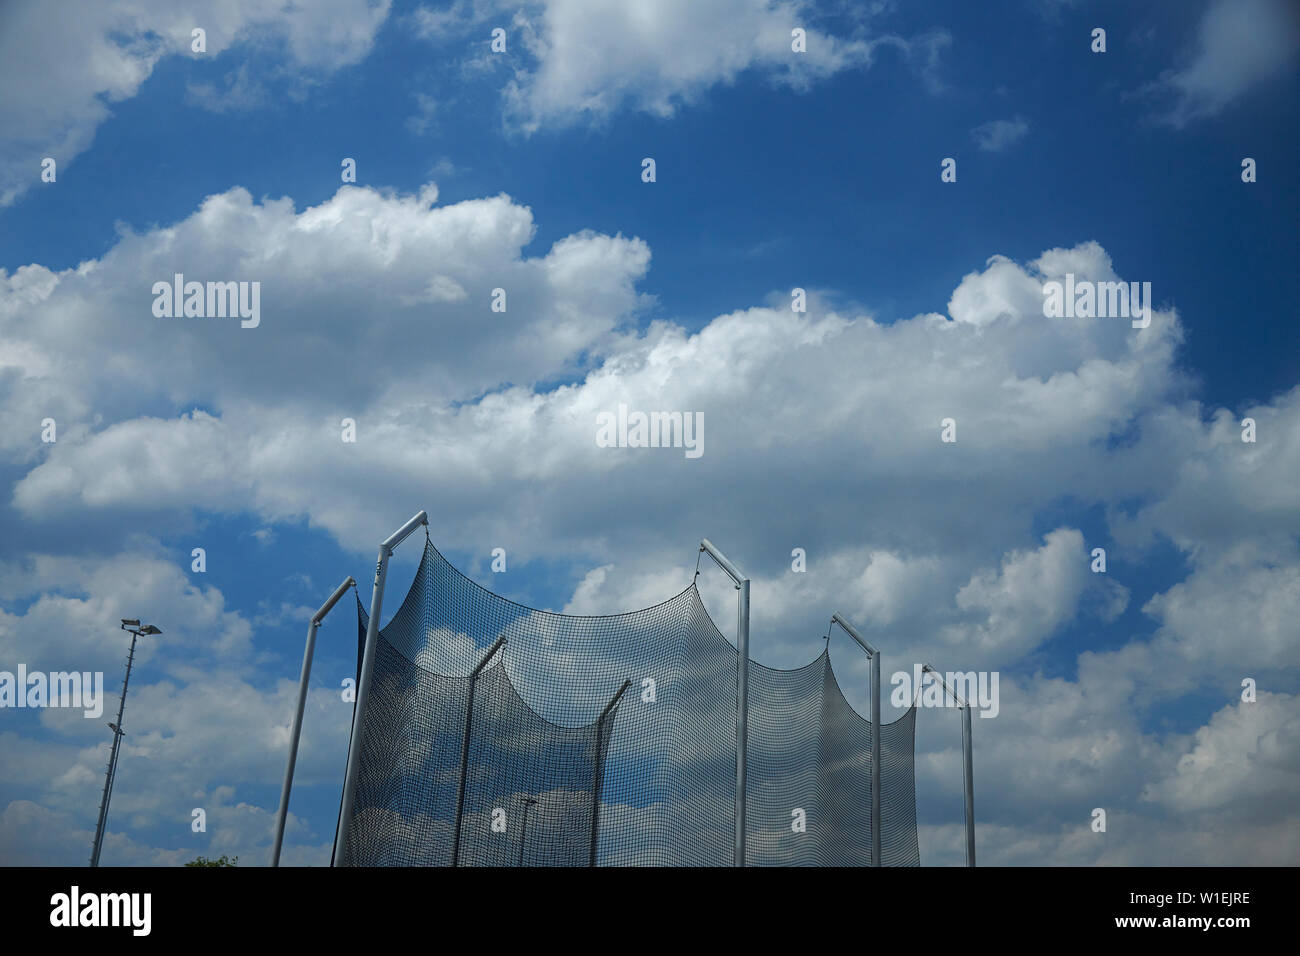 Throwing cage at an athletics track in bright summer sunshine - Stock Image